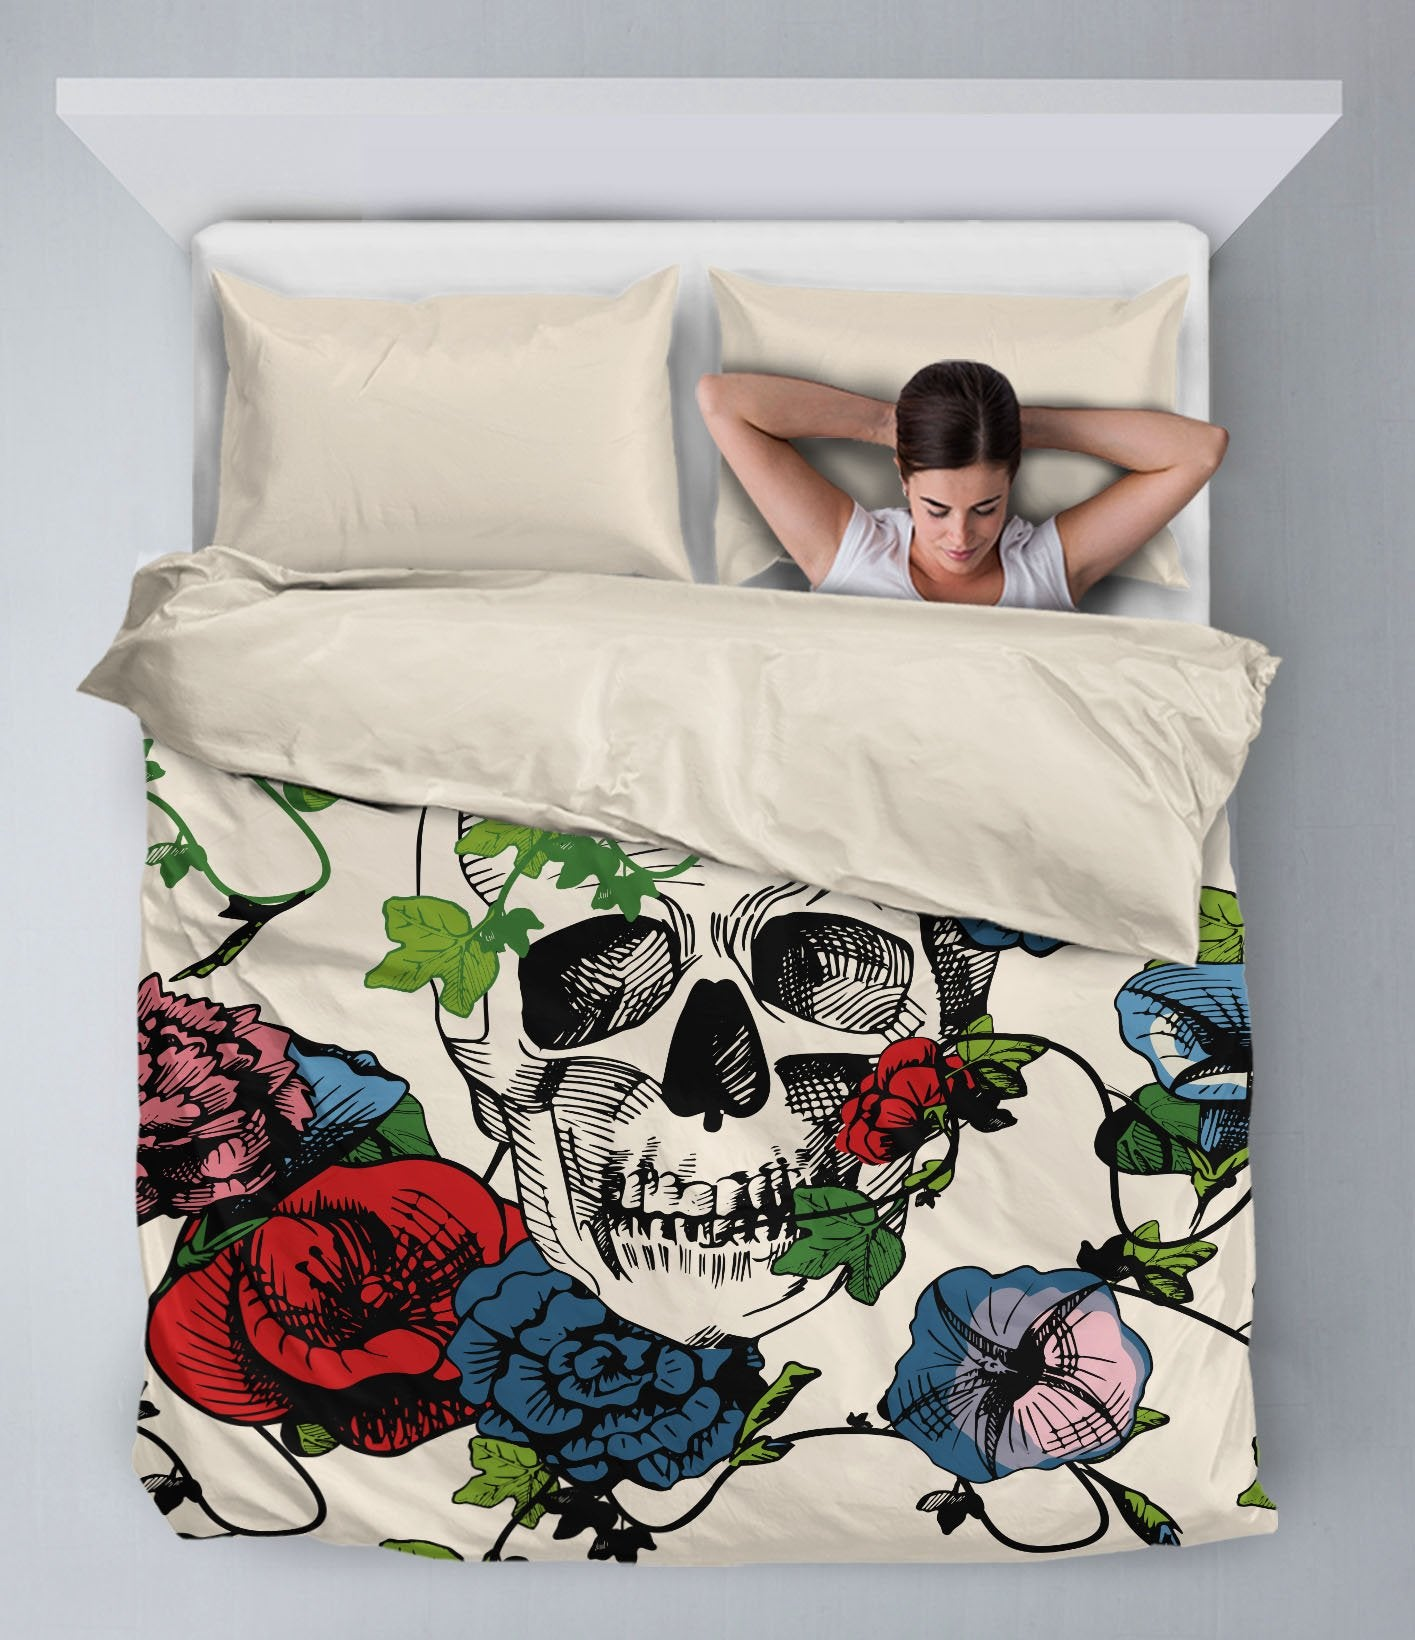 canterbury quirky red full cover bedding page kohphiphi size king reversible set info colour design duvet flowers poppy floral